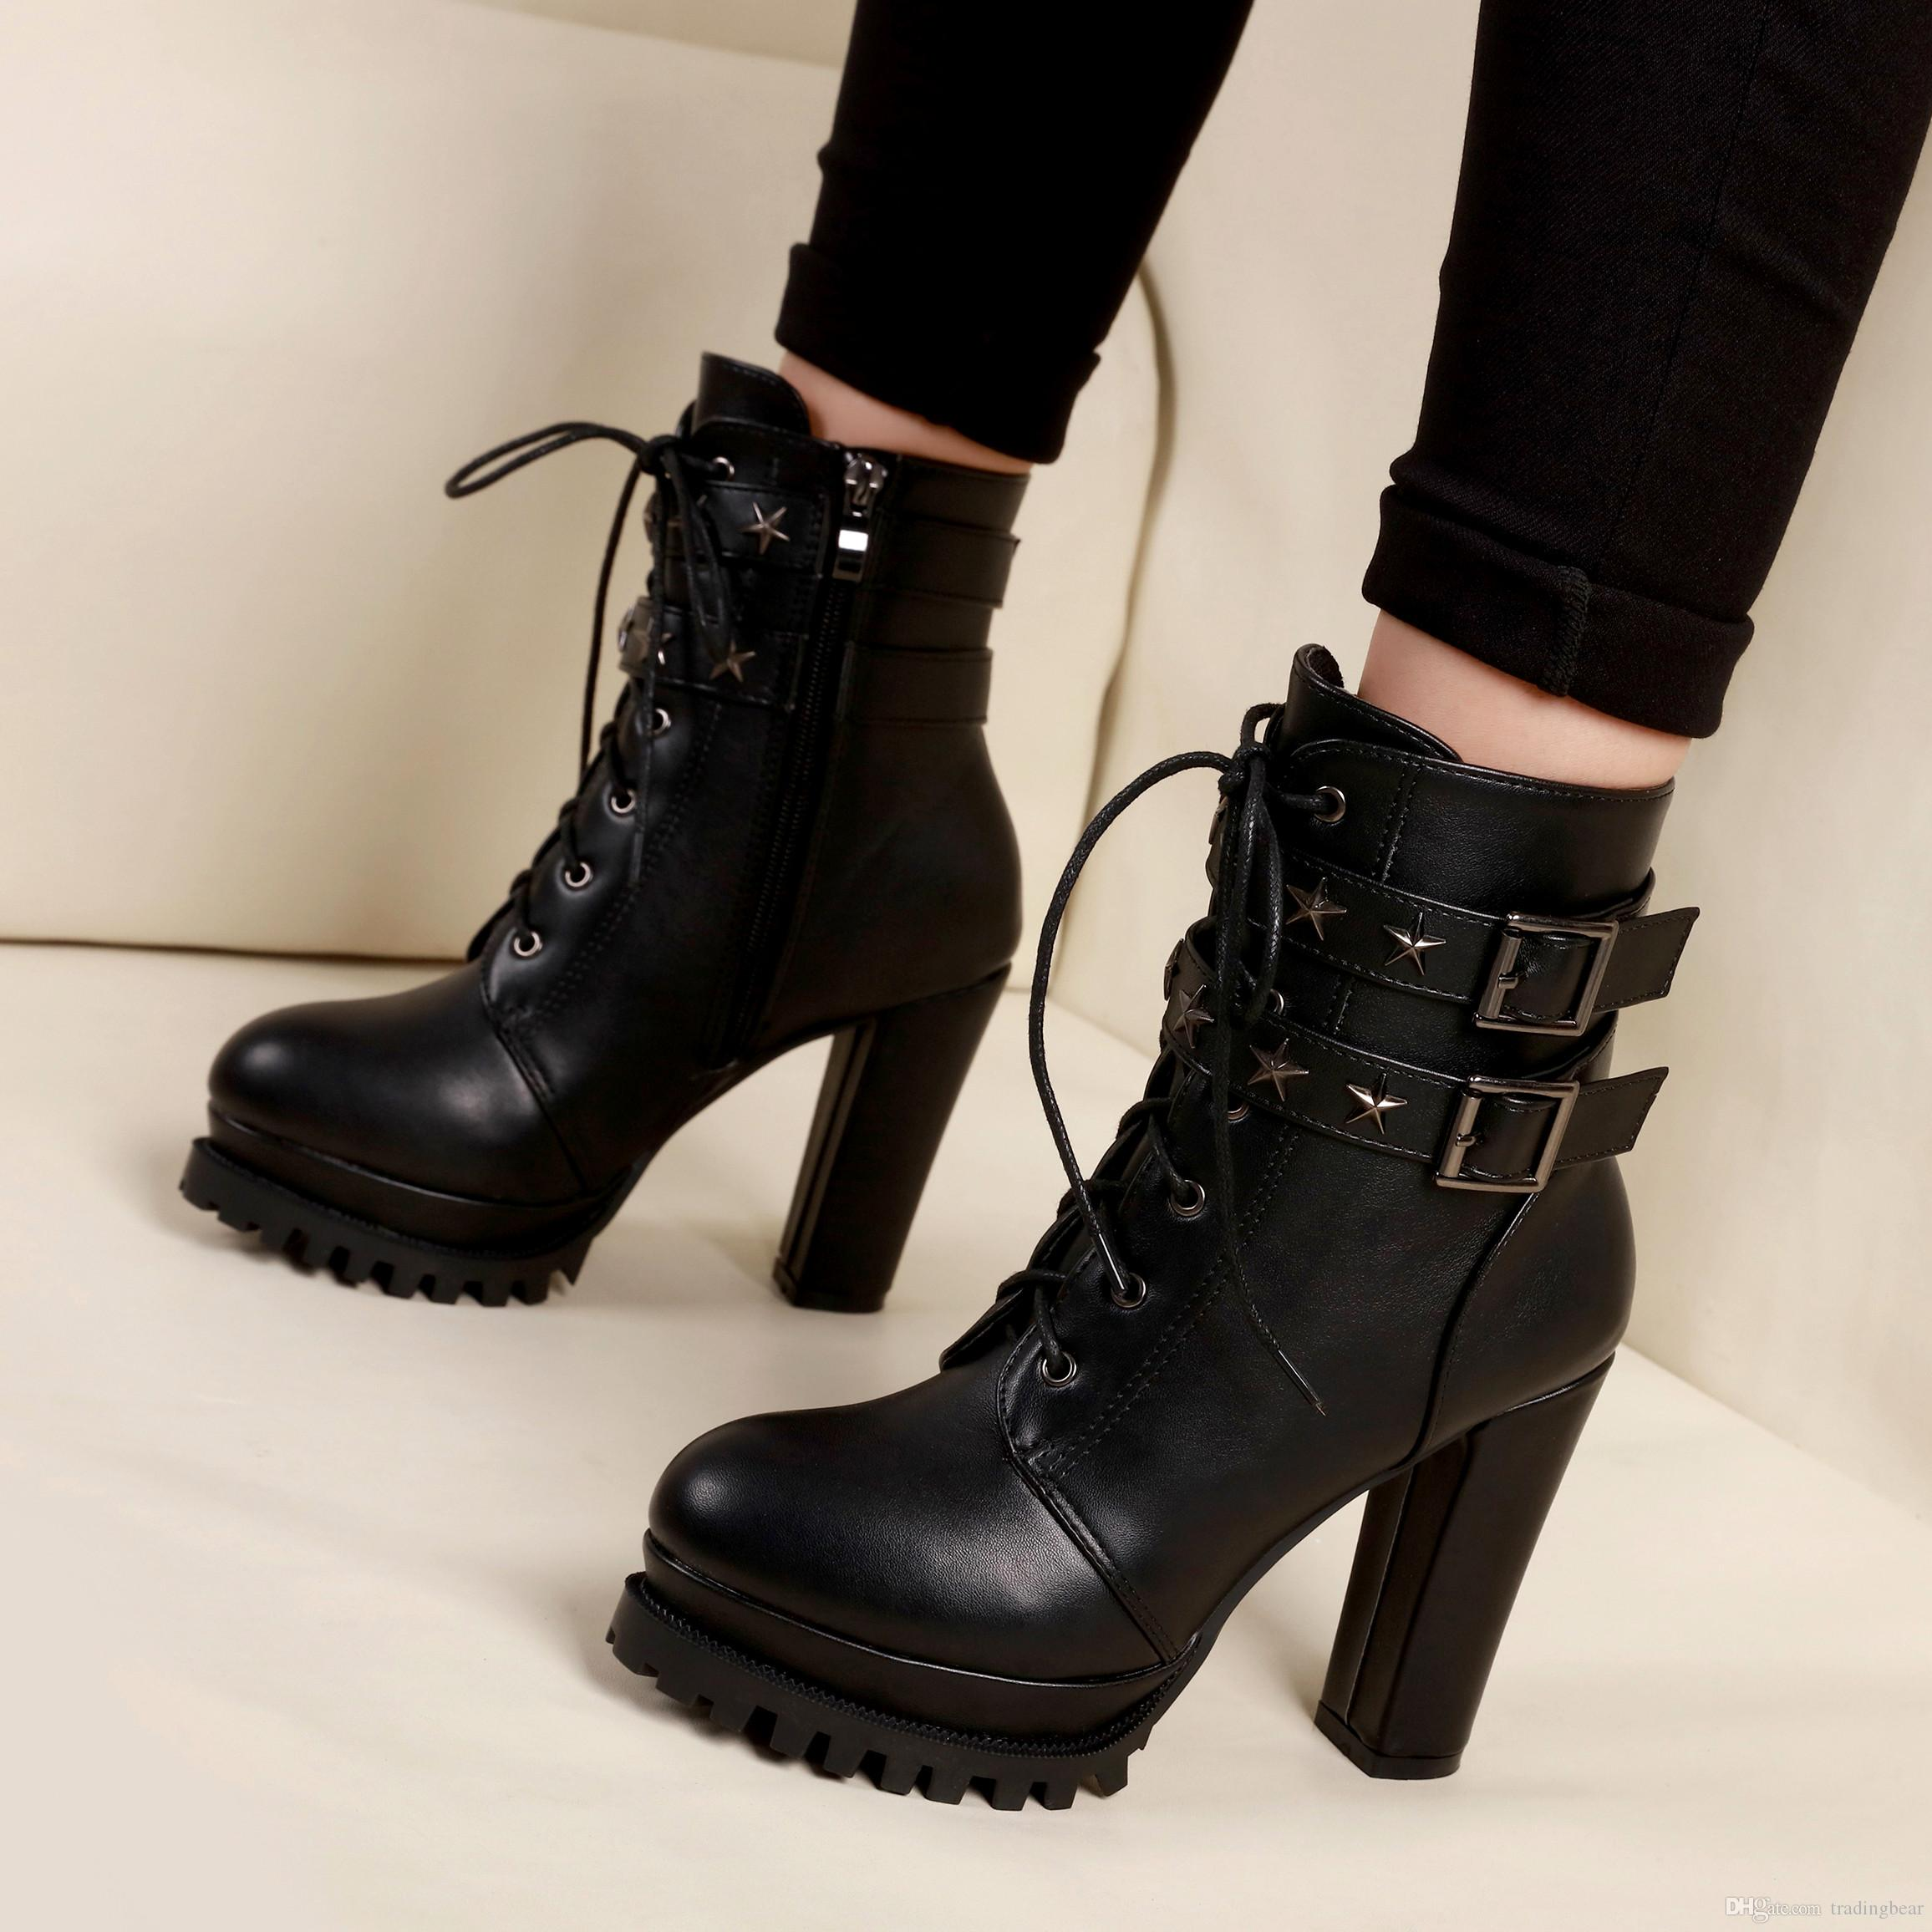 Platform Faux Suede Rivets Buckle High Heel Lady Womens Ankle Combat Boots Shoes